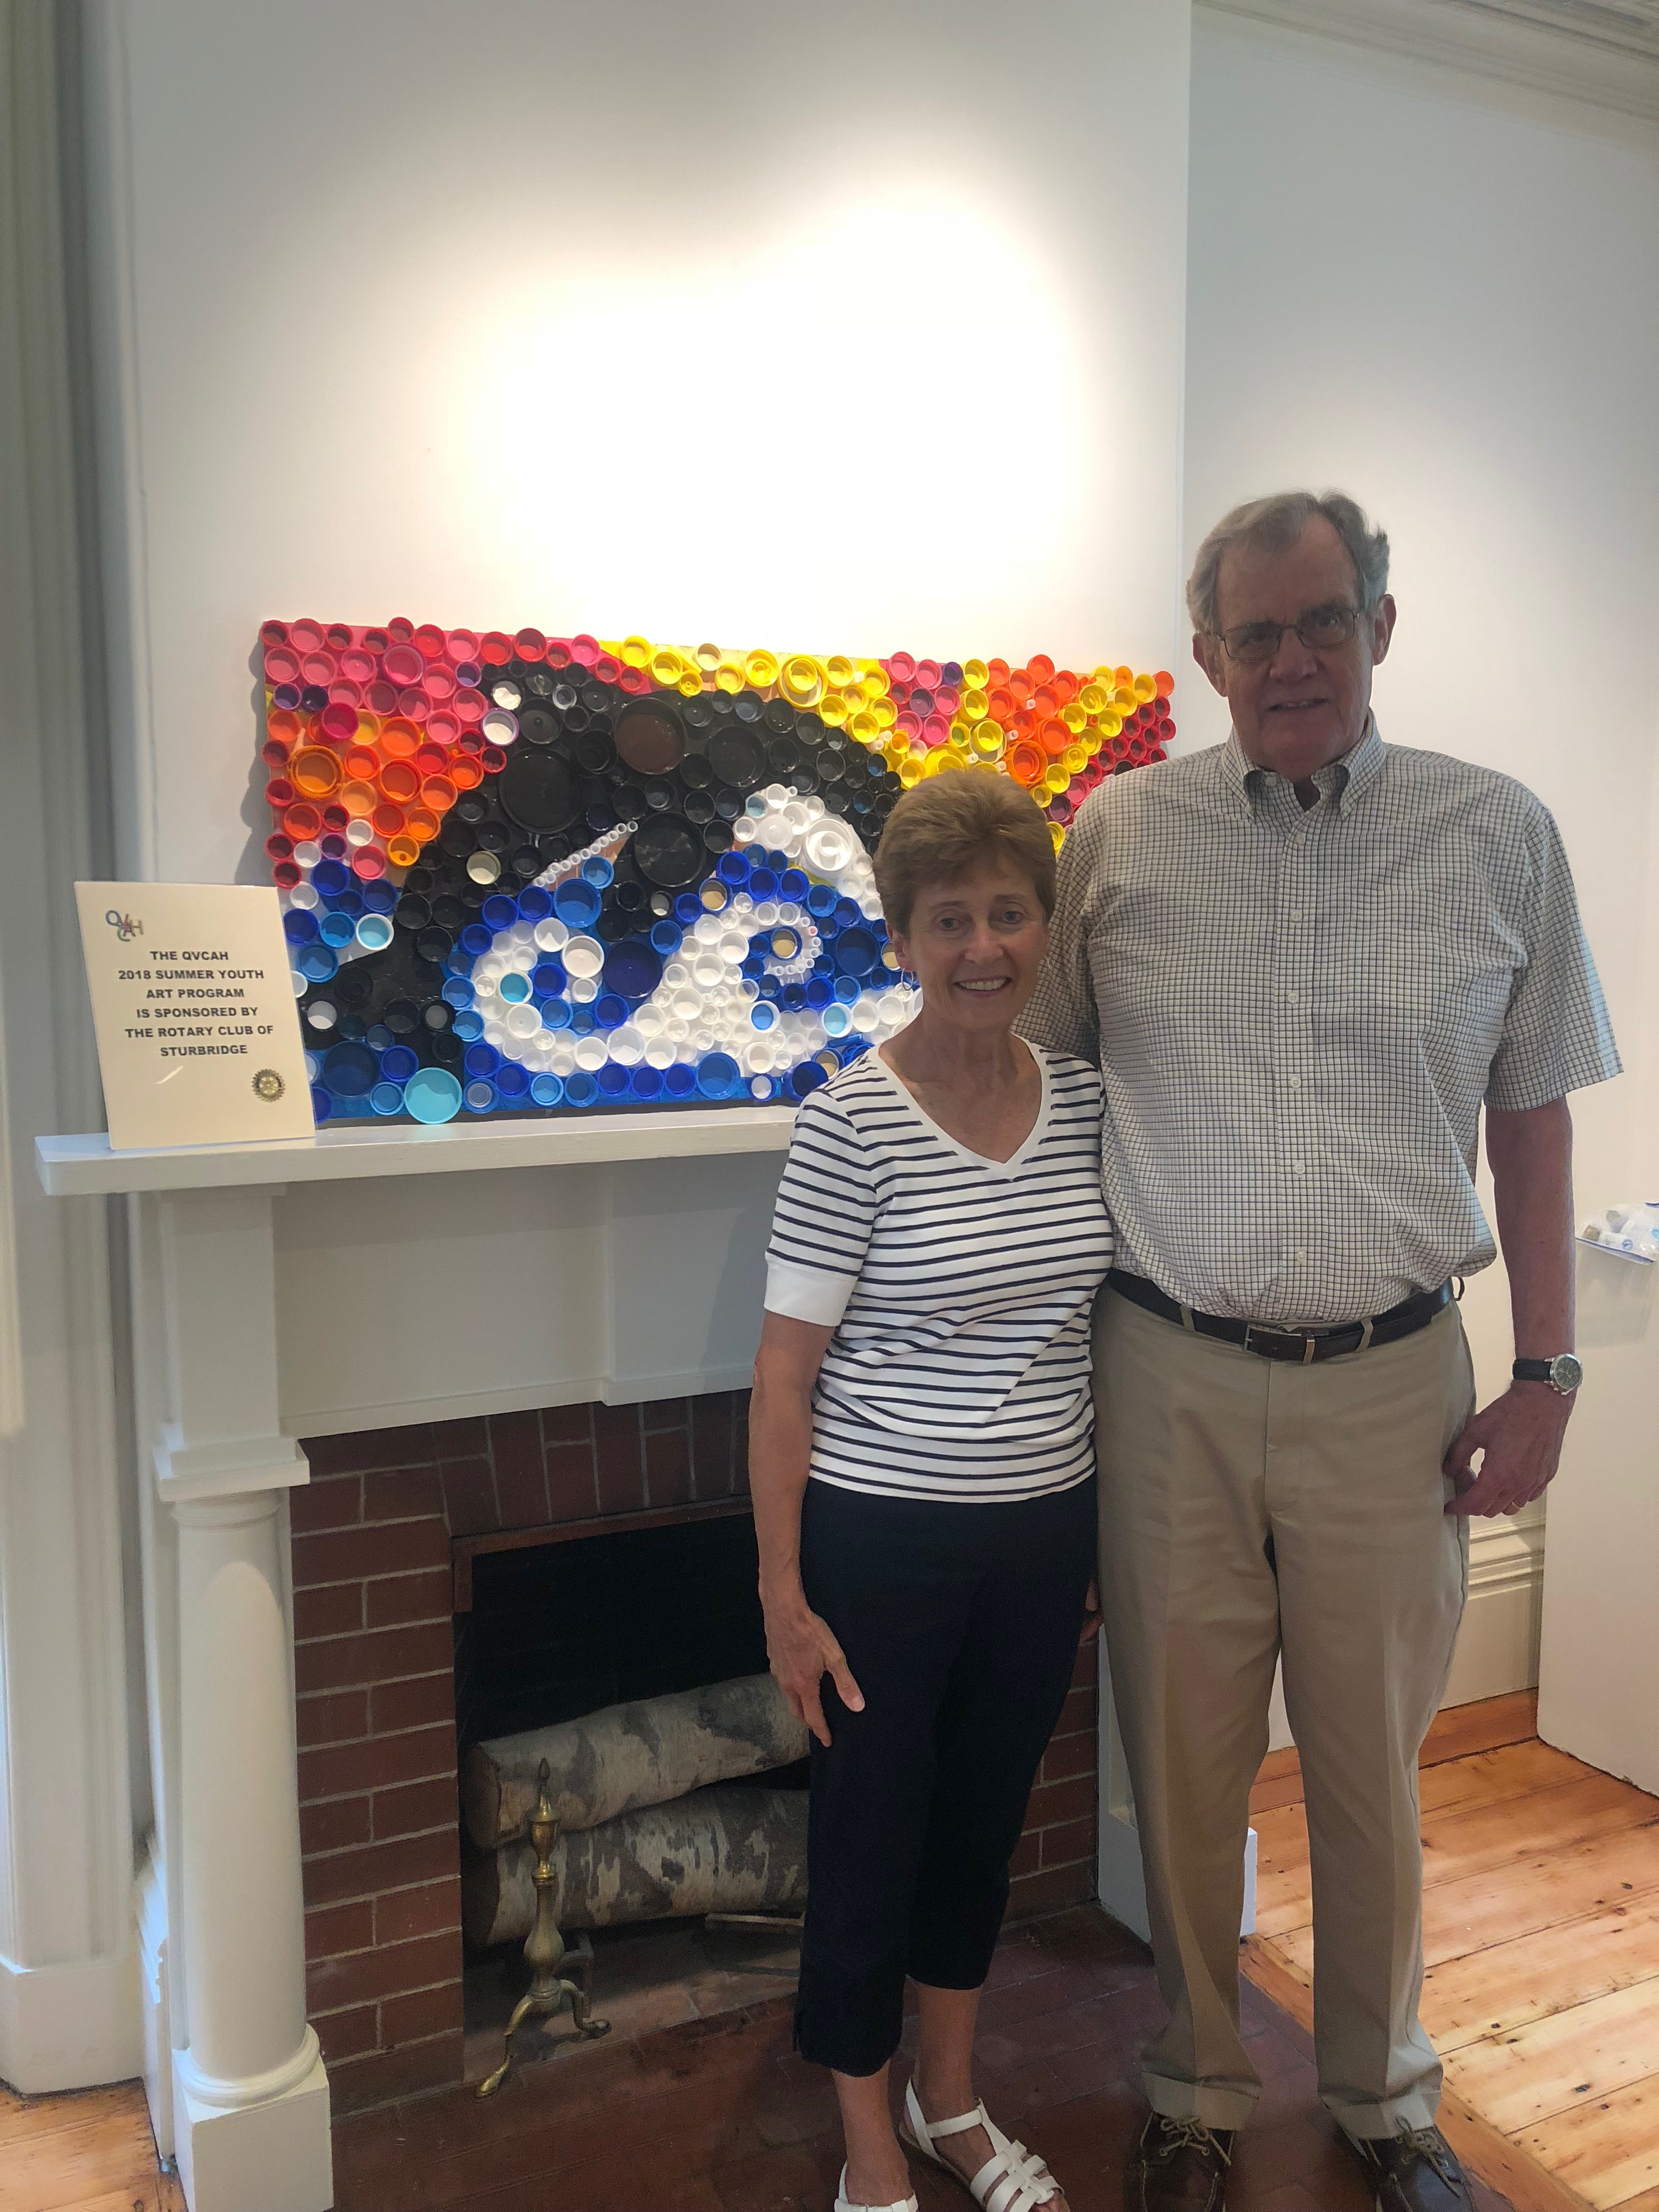 Free Kids' Art Classes Supported By Sturbridge Rotary